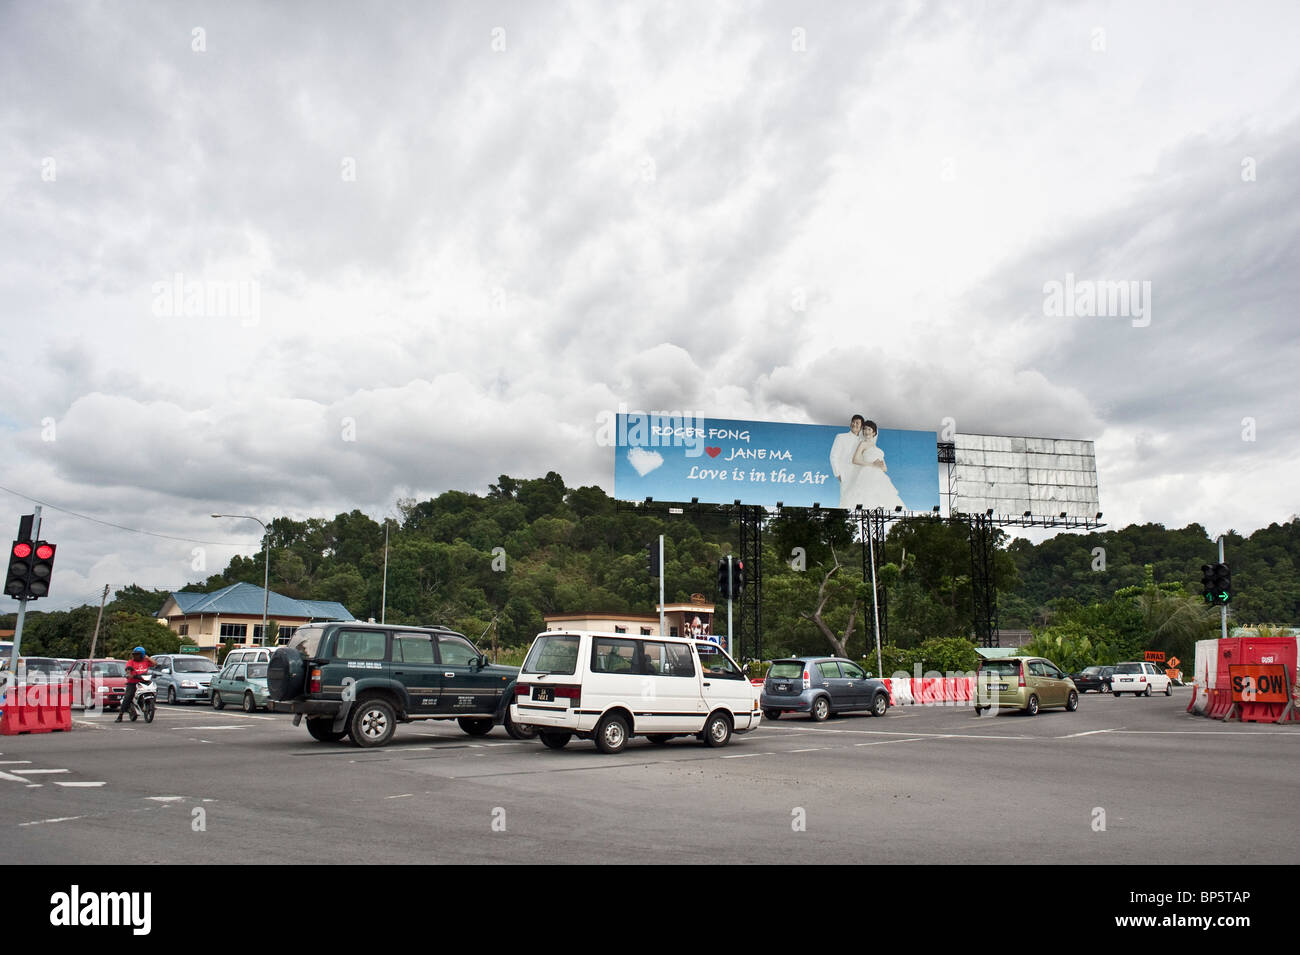 Very public declaration of Love by Roger Fong for Jane Ma in the outskirts of Kota Kinabalu. - Stock Image